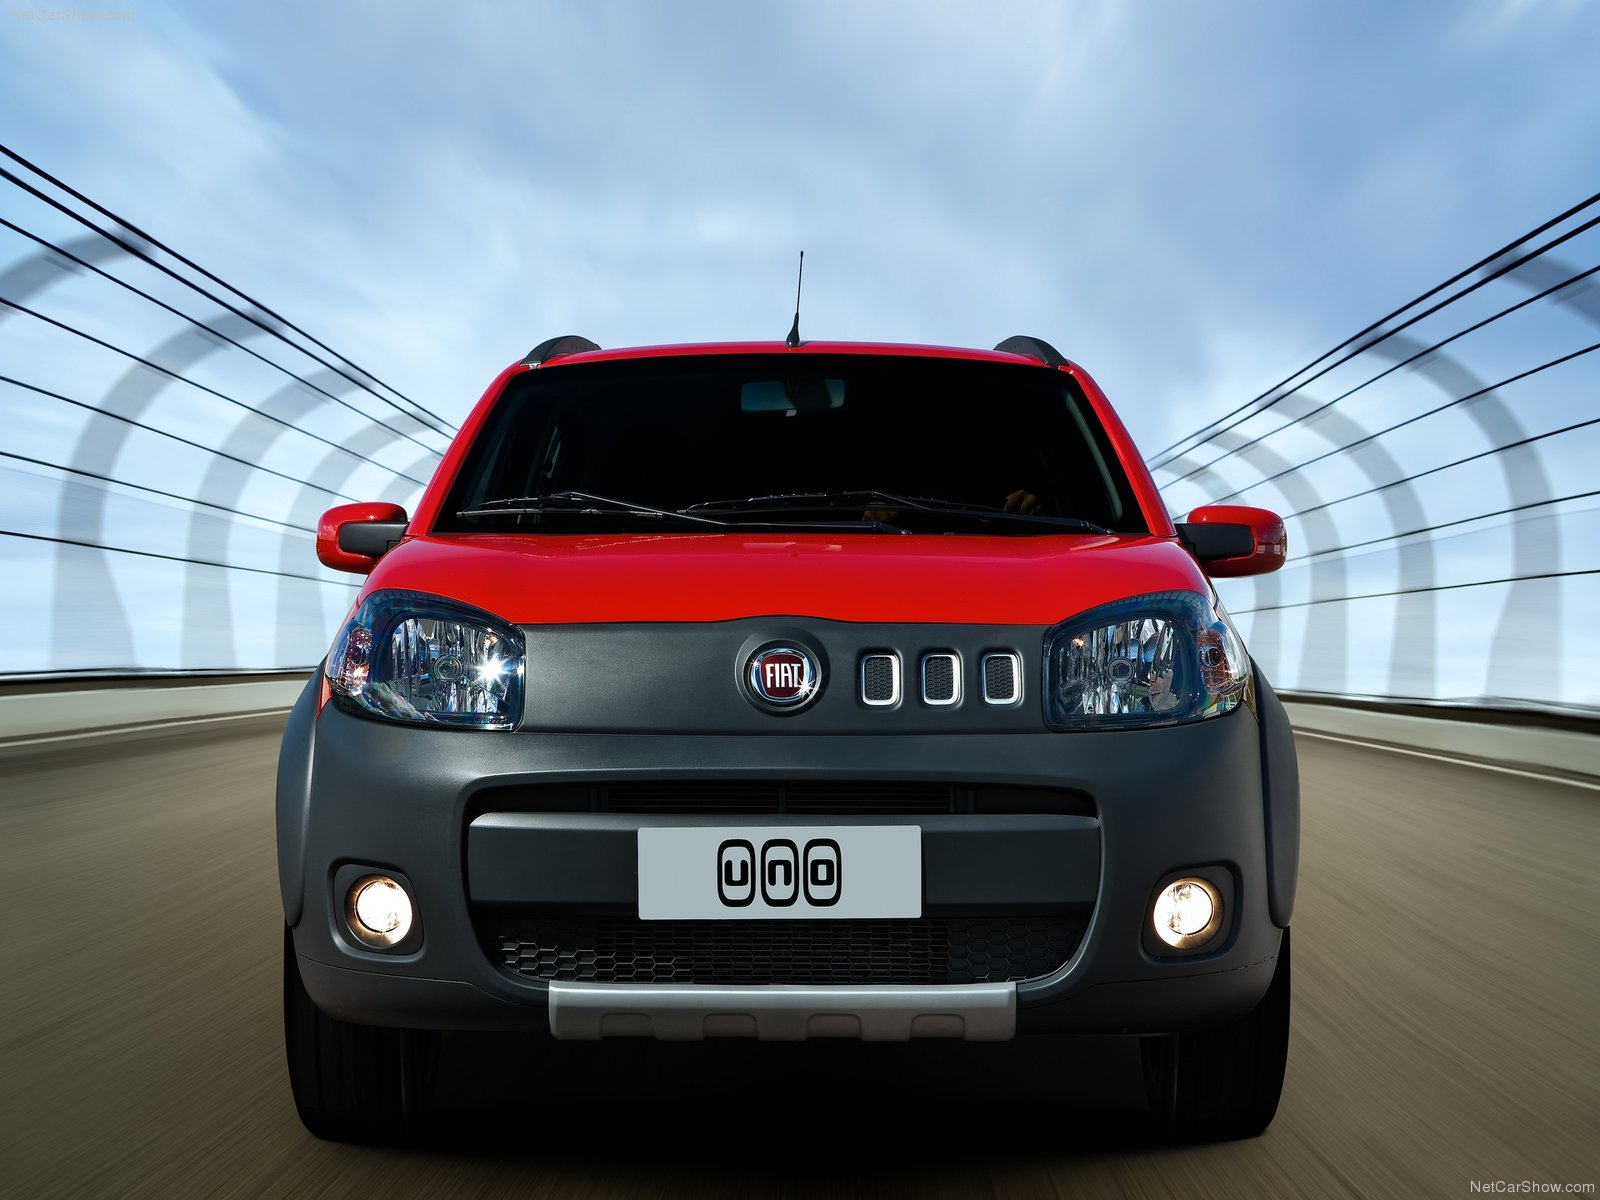 Tags: new Fiat Uno 2011 specs